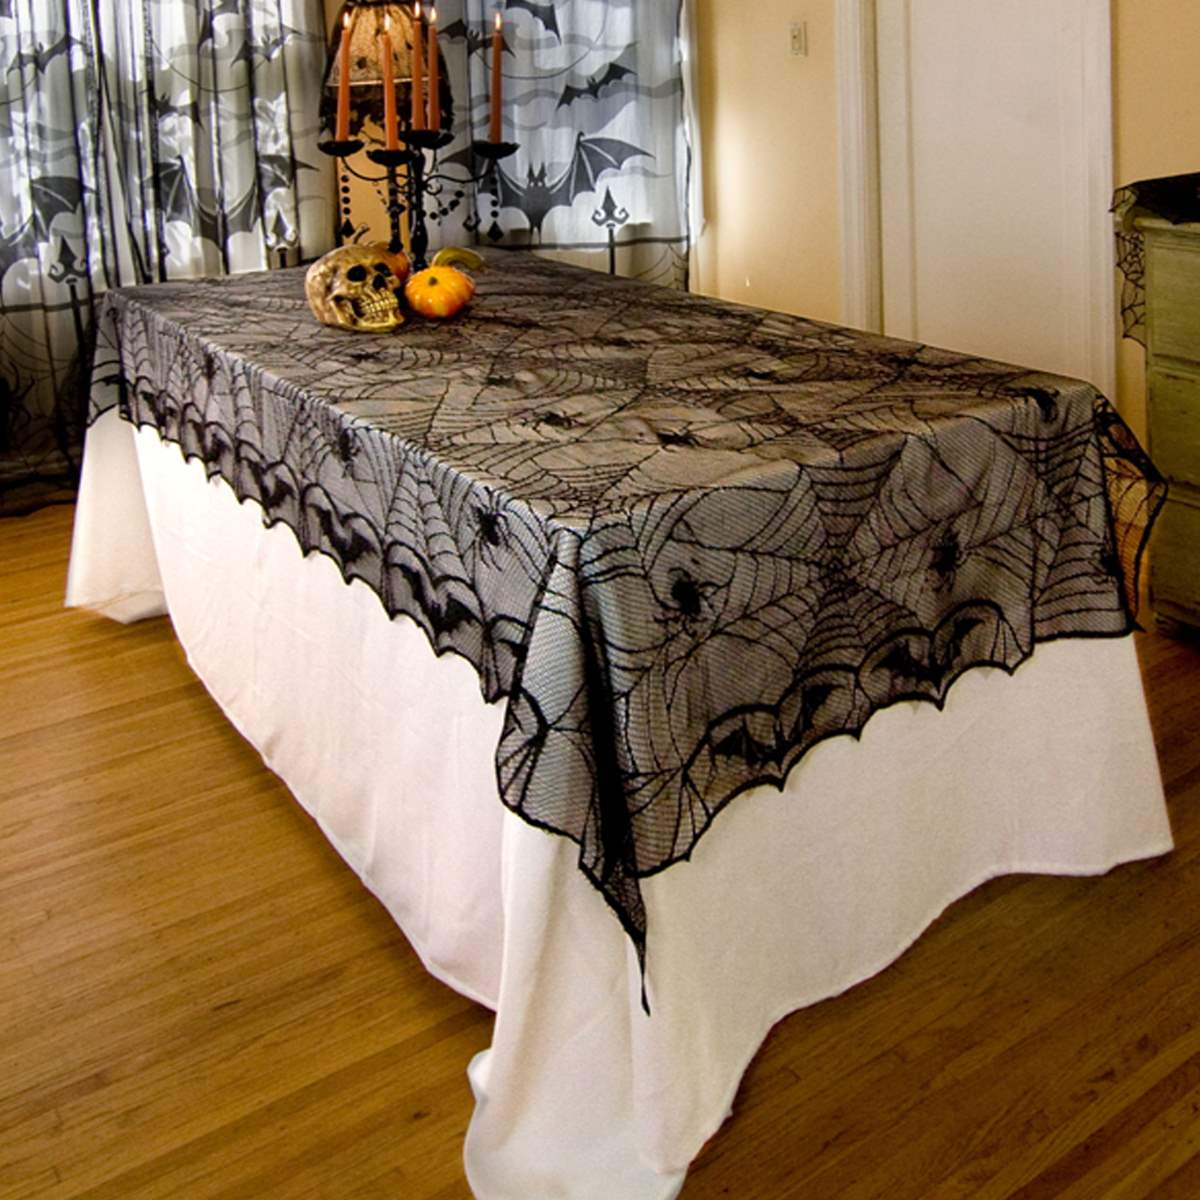 Halloween tablecloth - Polyester Black Lace Spiderweb Table Cloth Valance Tulle Bat Spider Tablecloth Halloween Party Events Diy Decoration